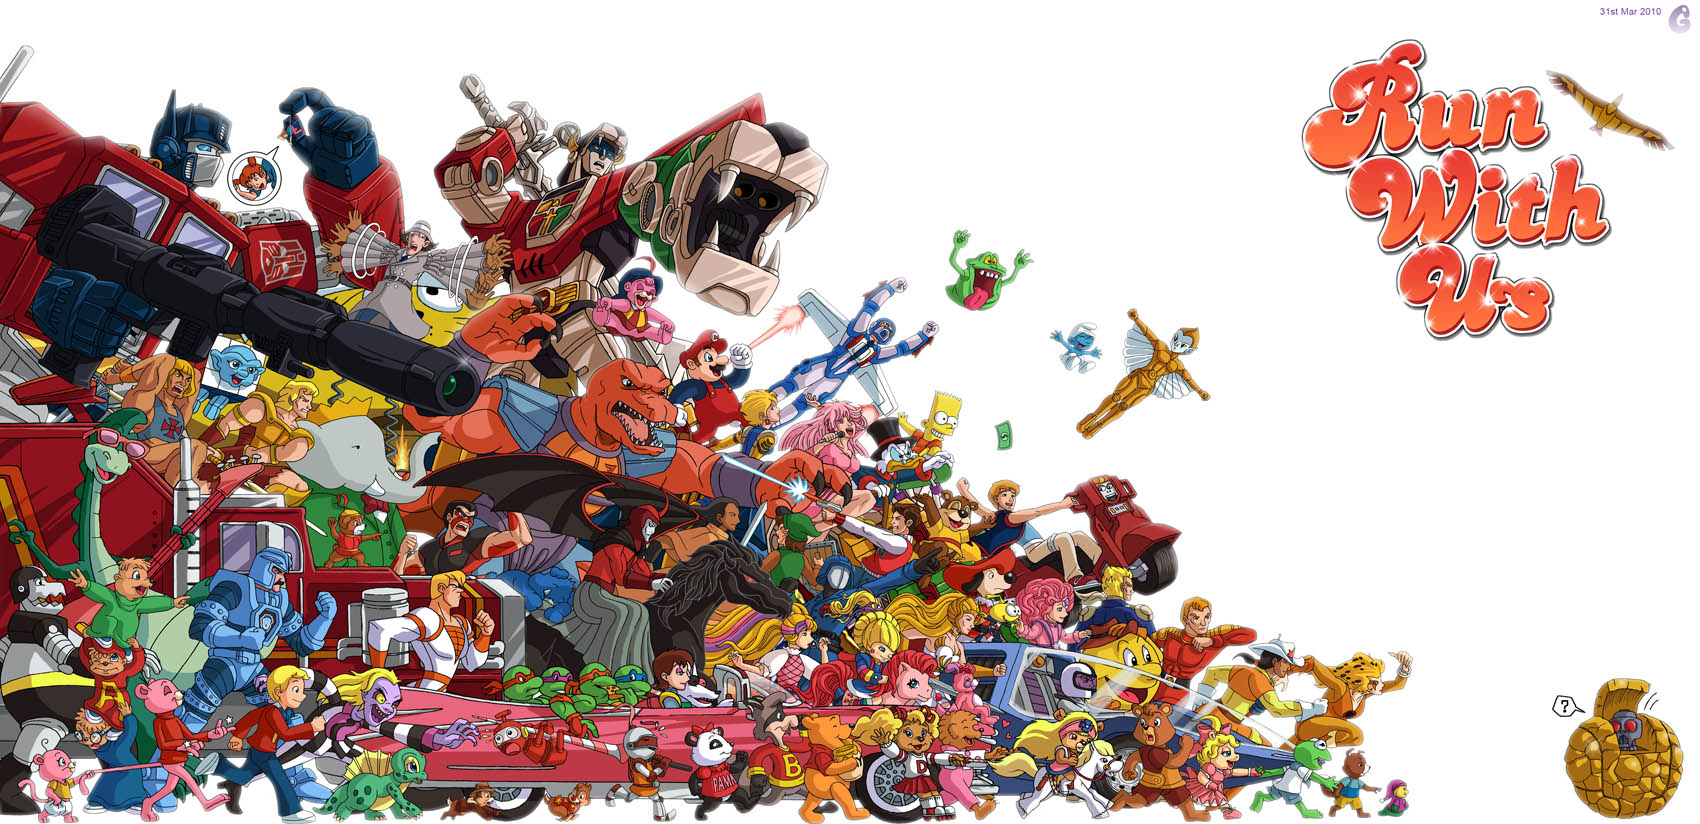 80s Cartoon Central  All your favorite cartoons from the